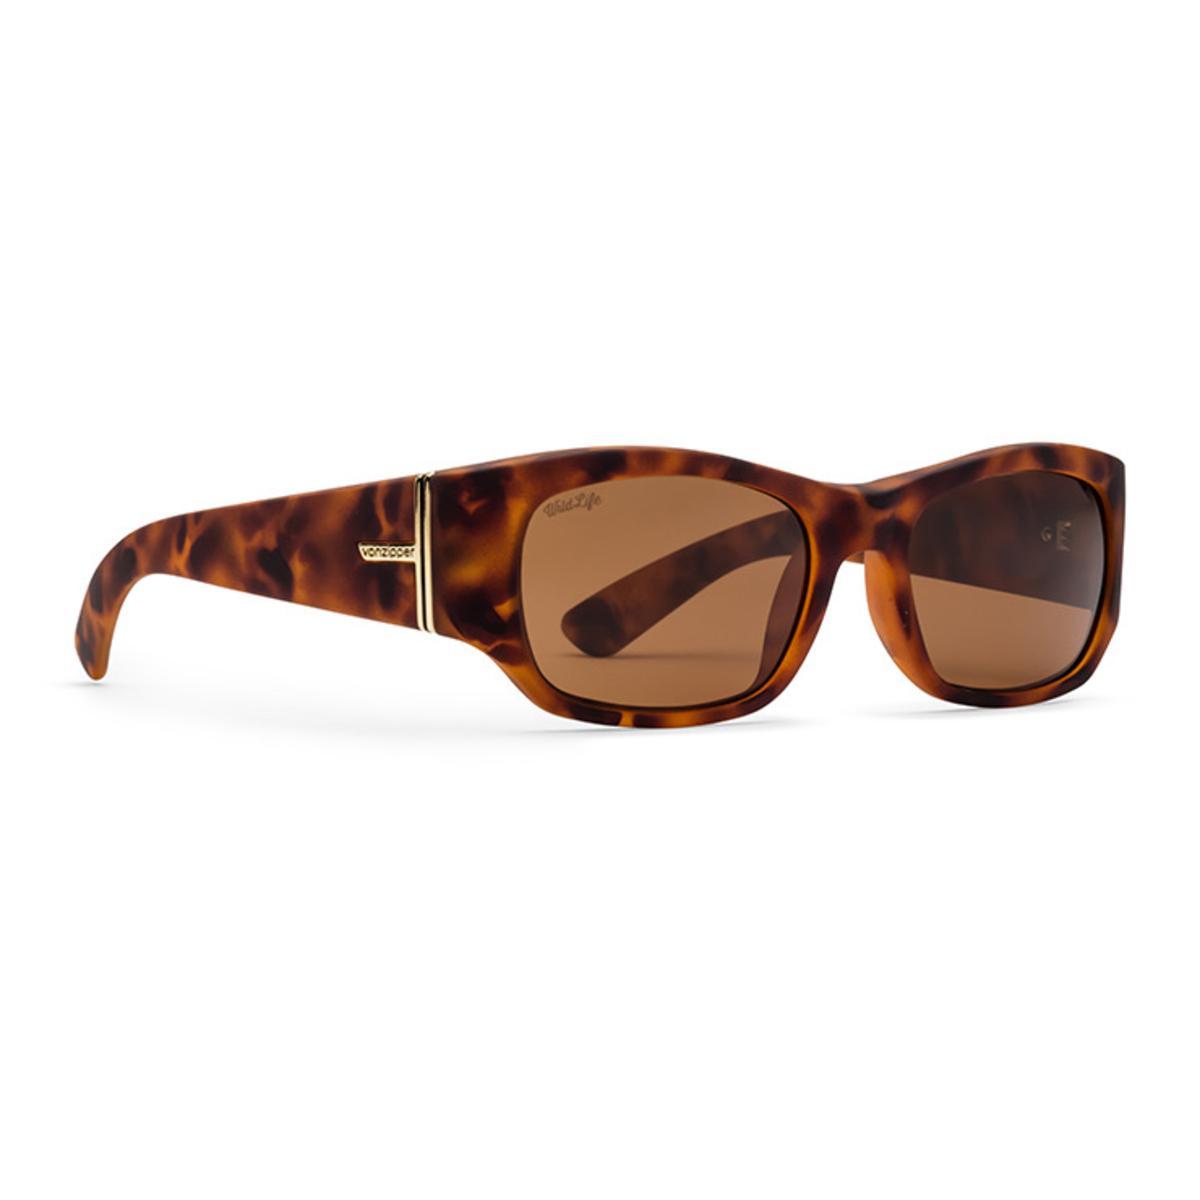 Vonzipper Juvie Sunglasses